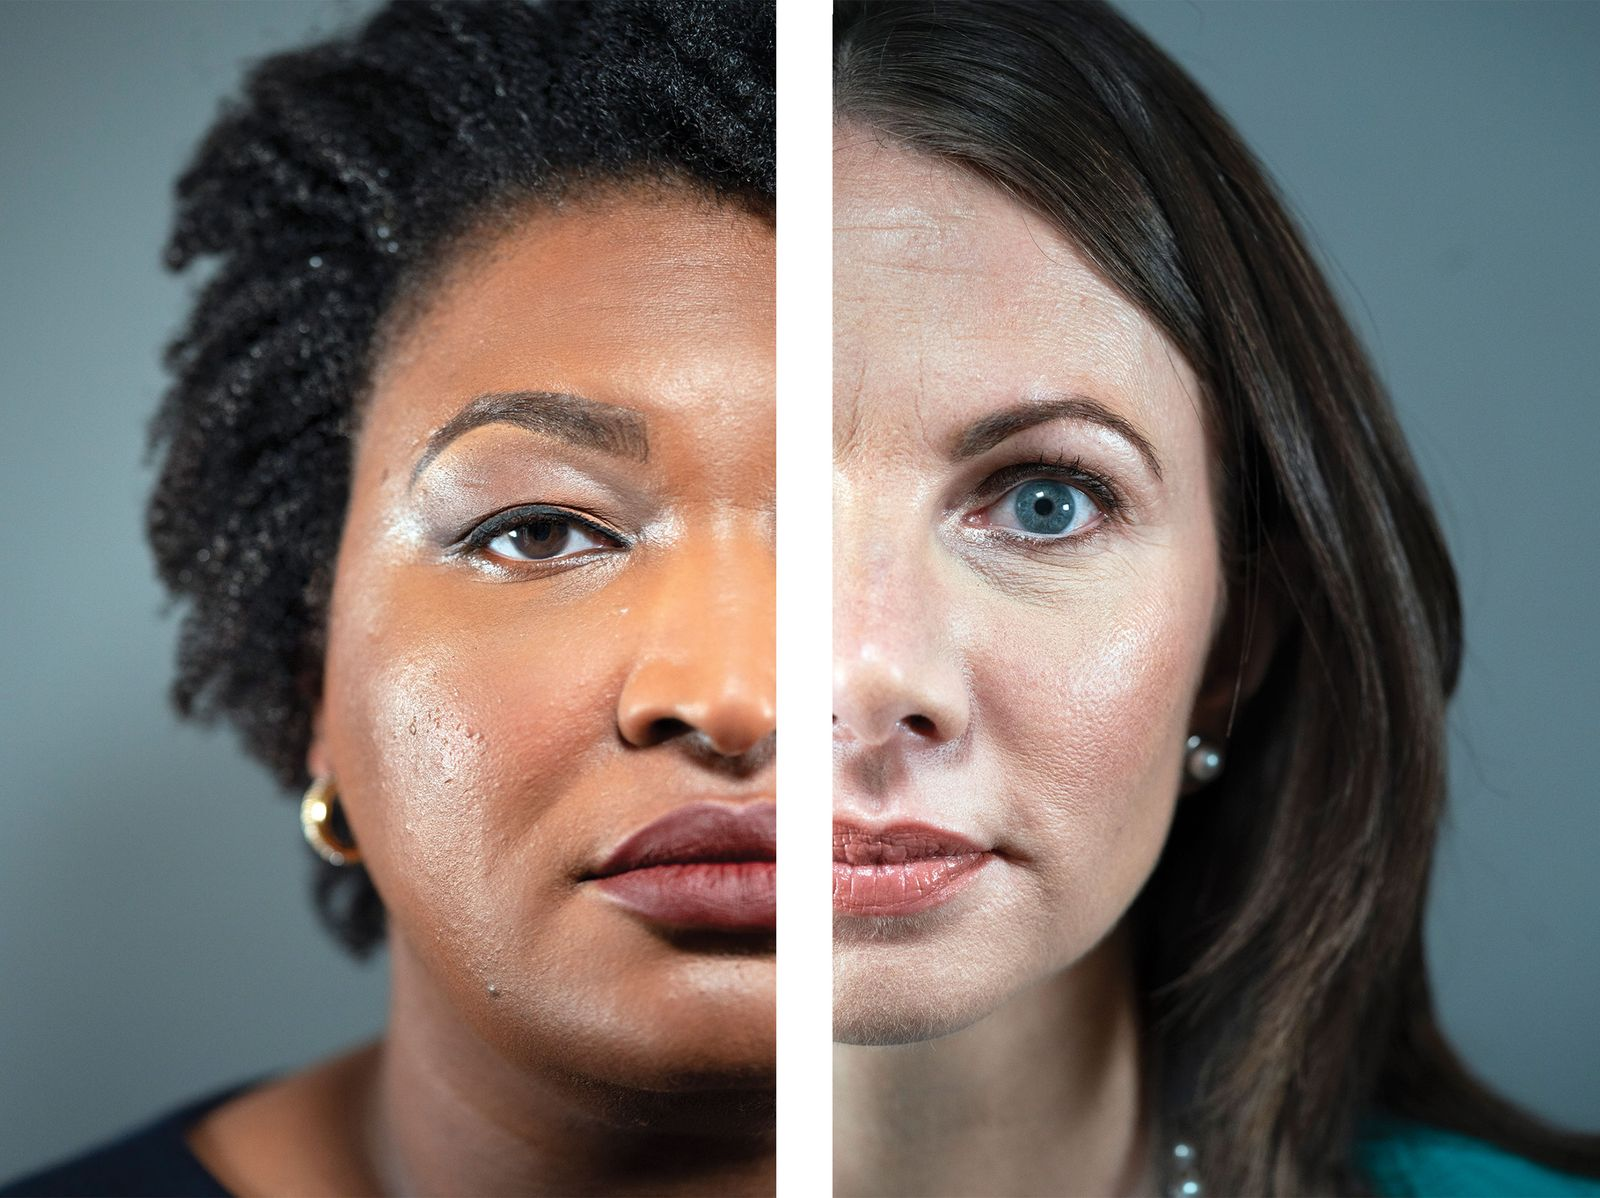 Stacey Abrams (left) and Stacey Evans.